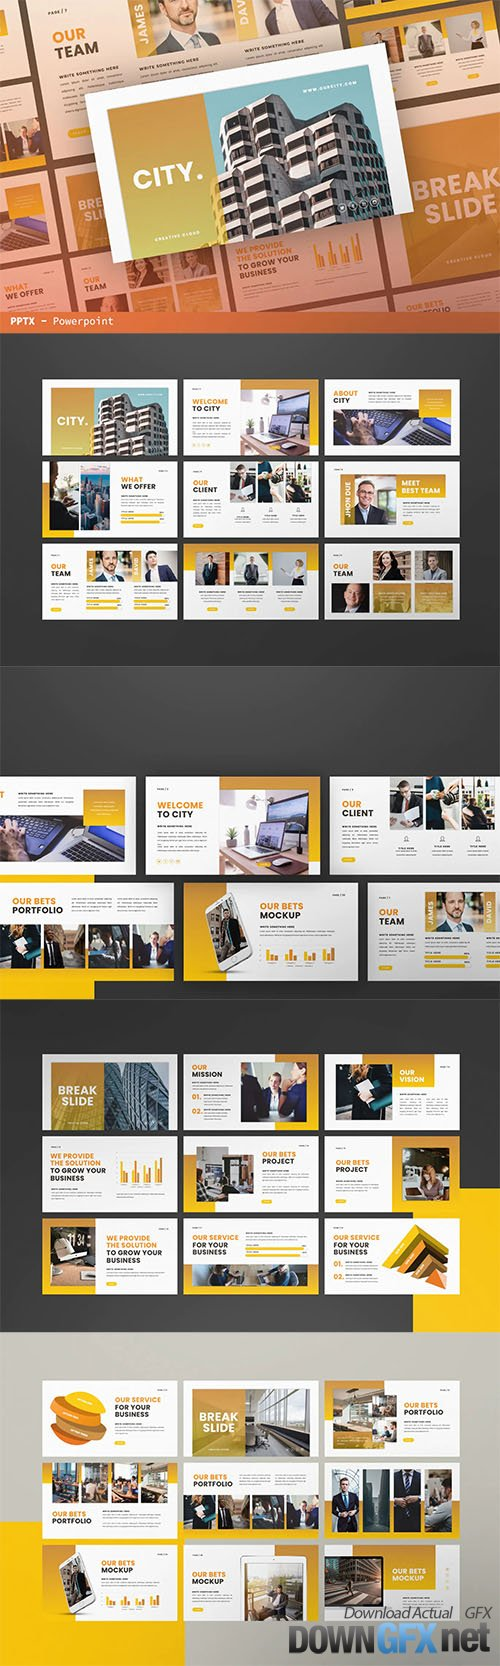 City Business Powerpoint, Keynote, Google Slides, Presentation Template